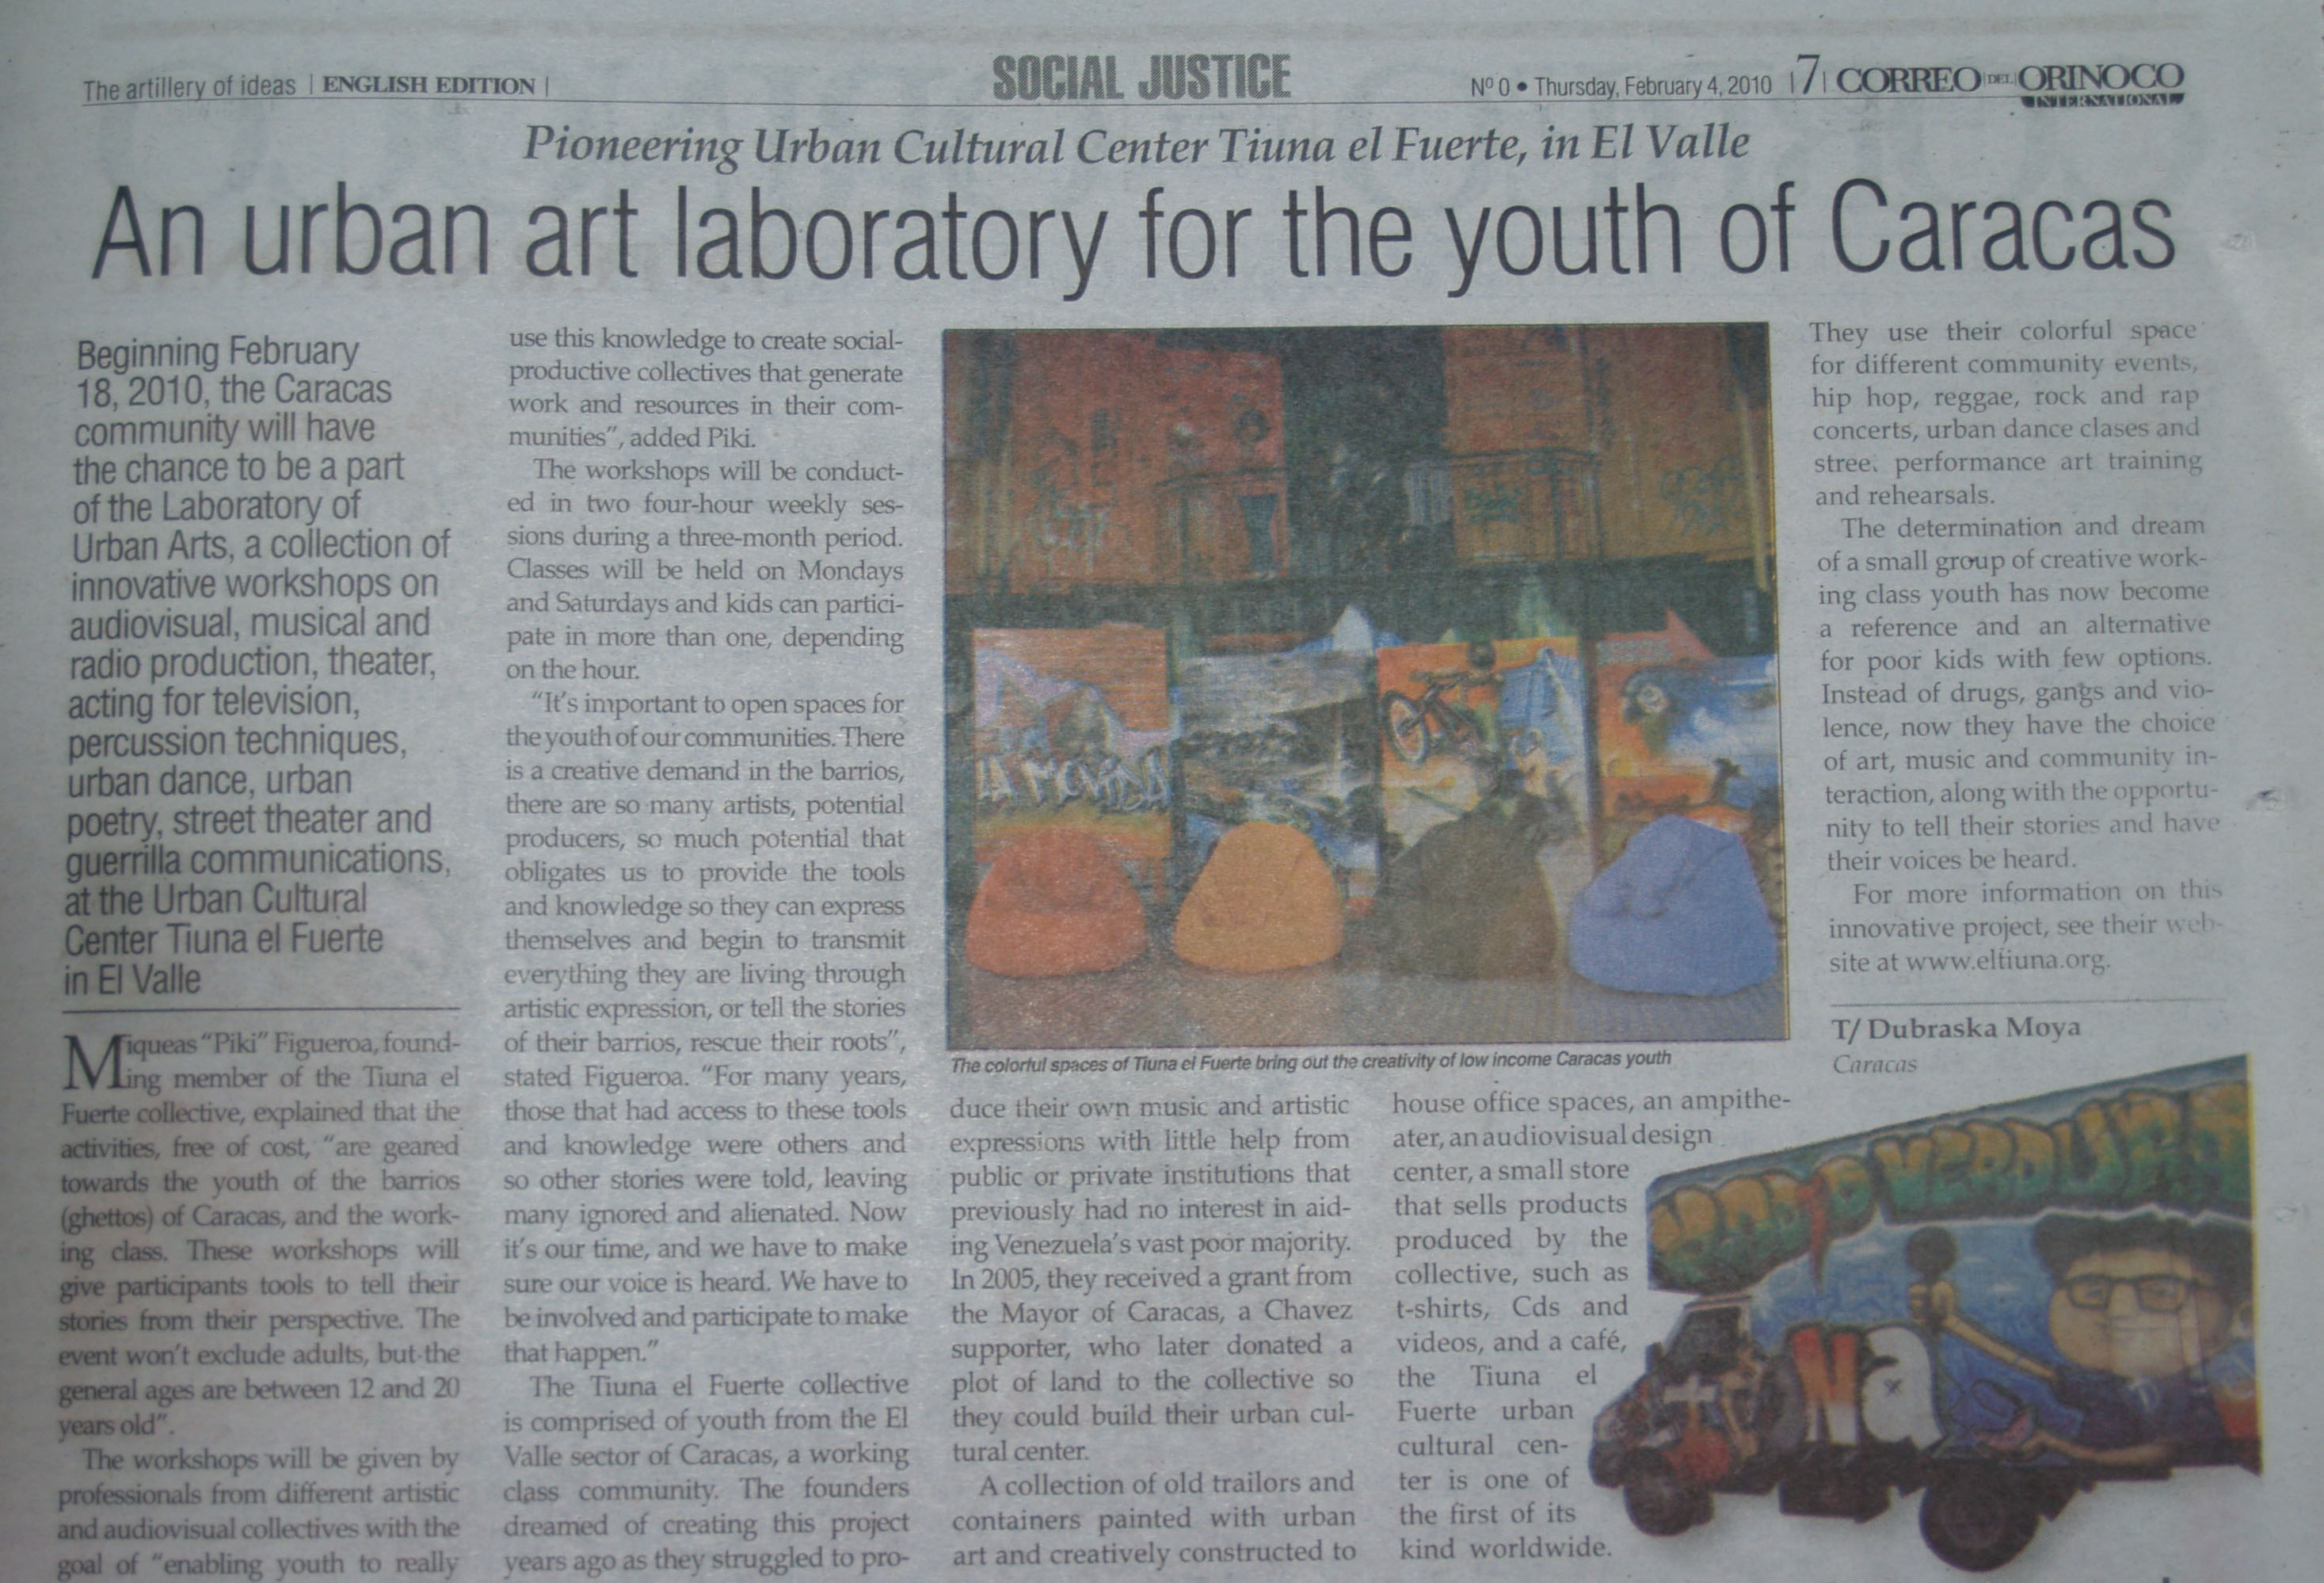 An urban art laboratory for the youth of Caracas